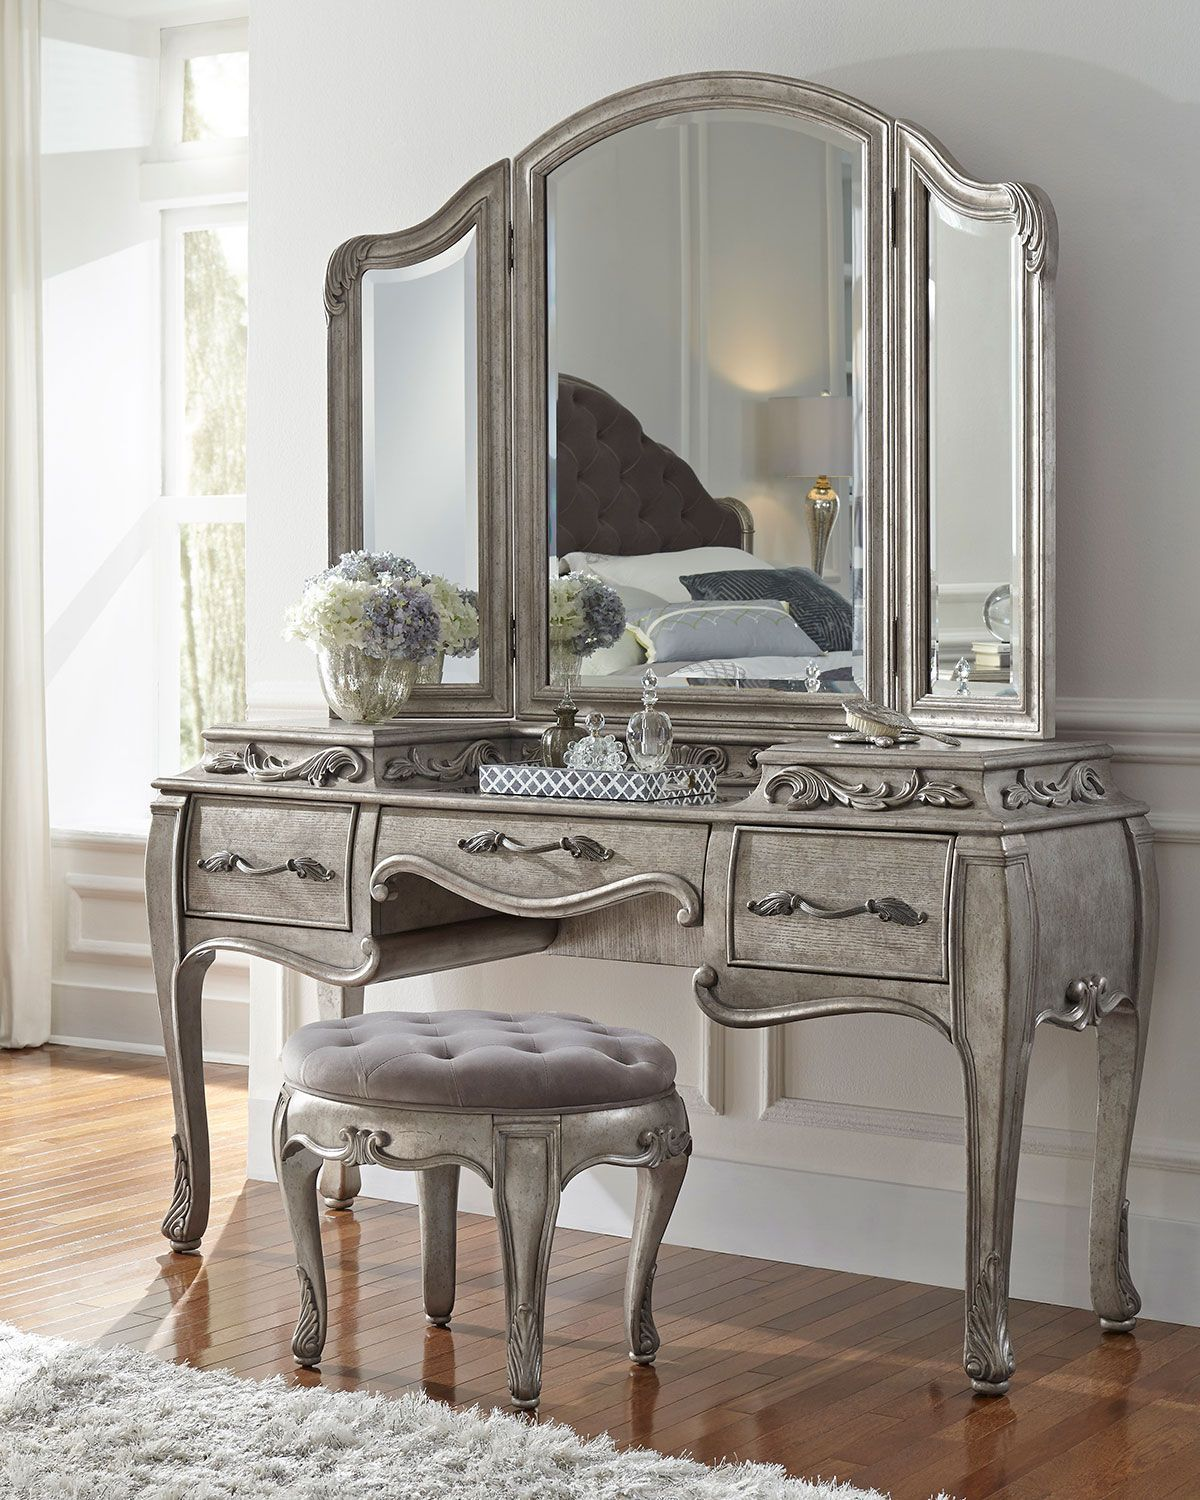 Tri Fold Vanity Mirror Beveled Mirrors Rubberwood Frame With Aged Silver Patina 54 W X 2 D 42 T Imported Weight 23 Lbs